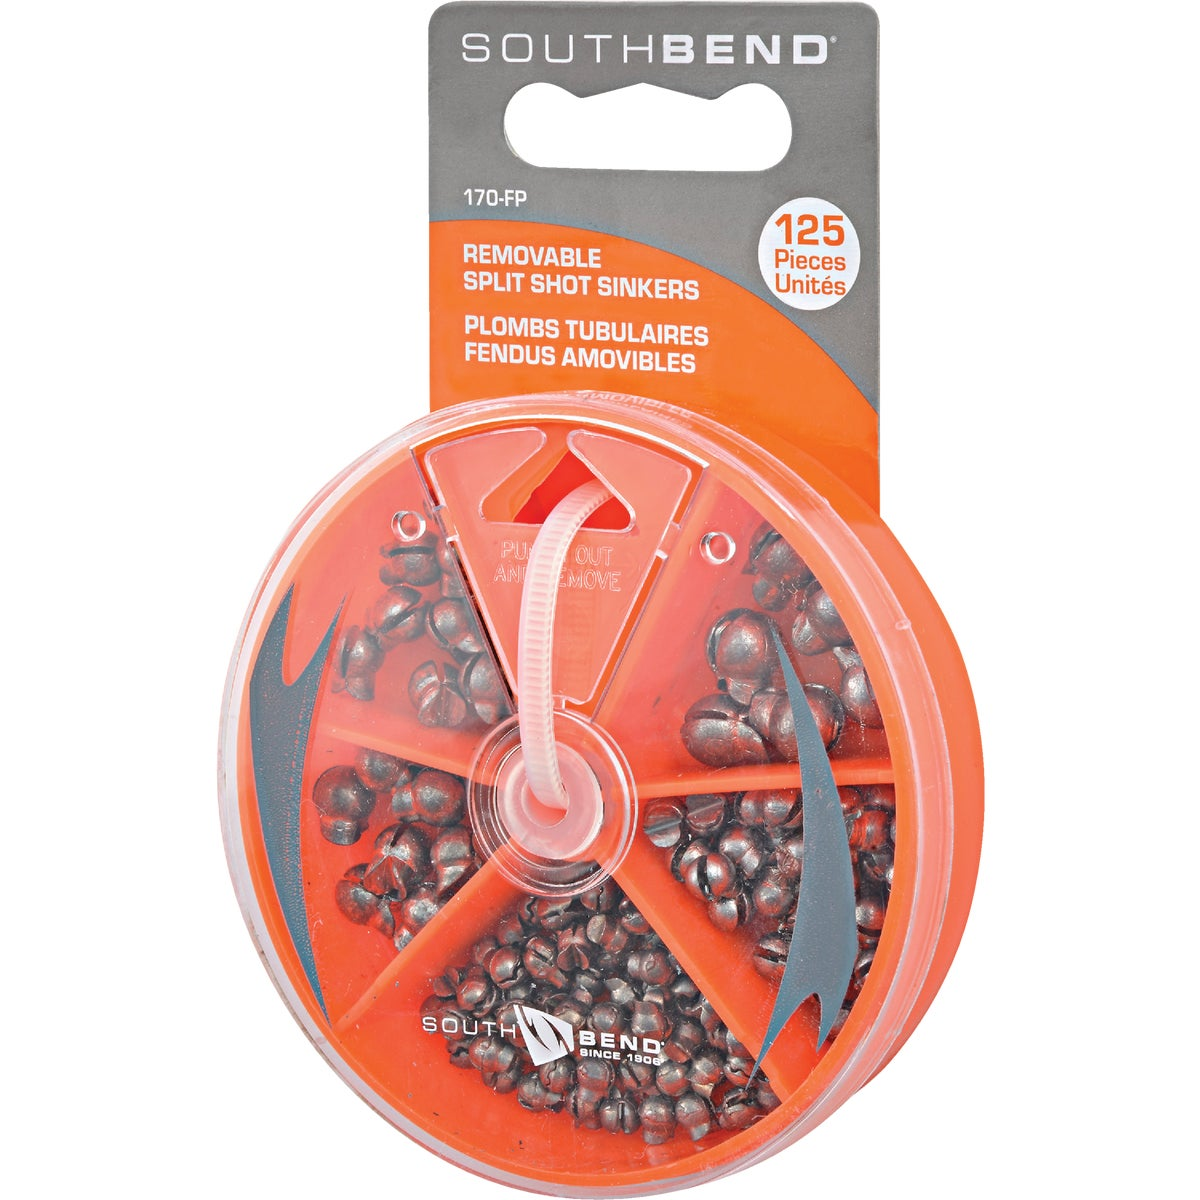 ASSORTED SPLIT SINKERS - 170-FP by South Bend Sptg Good